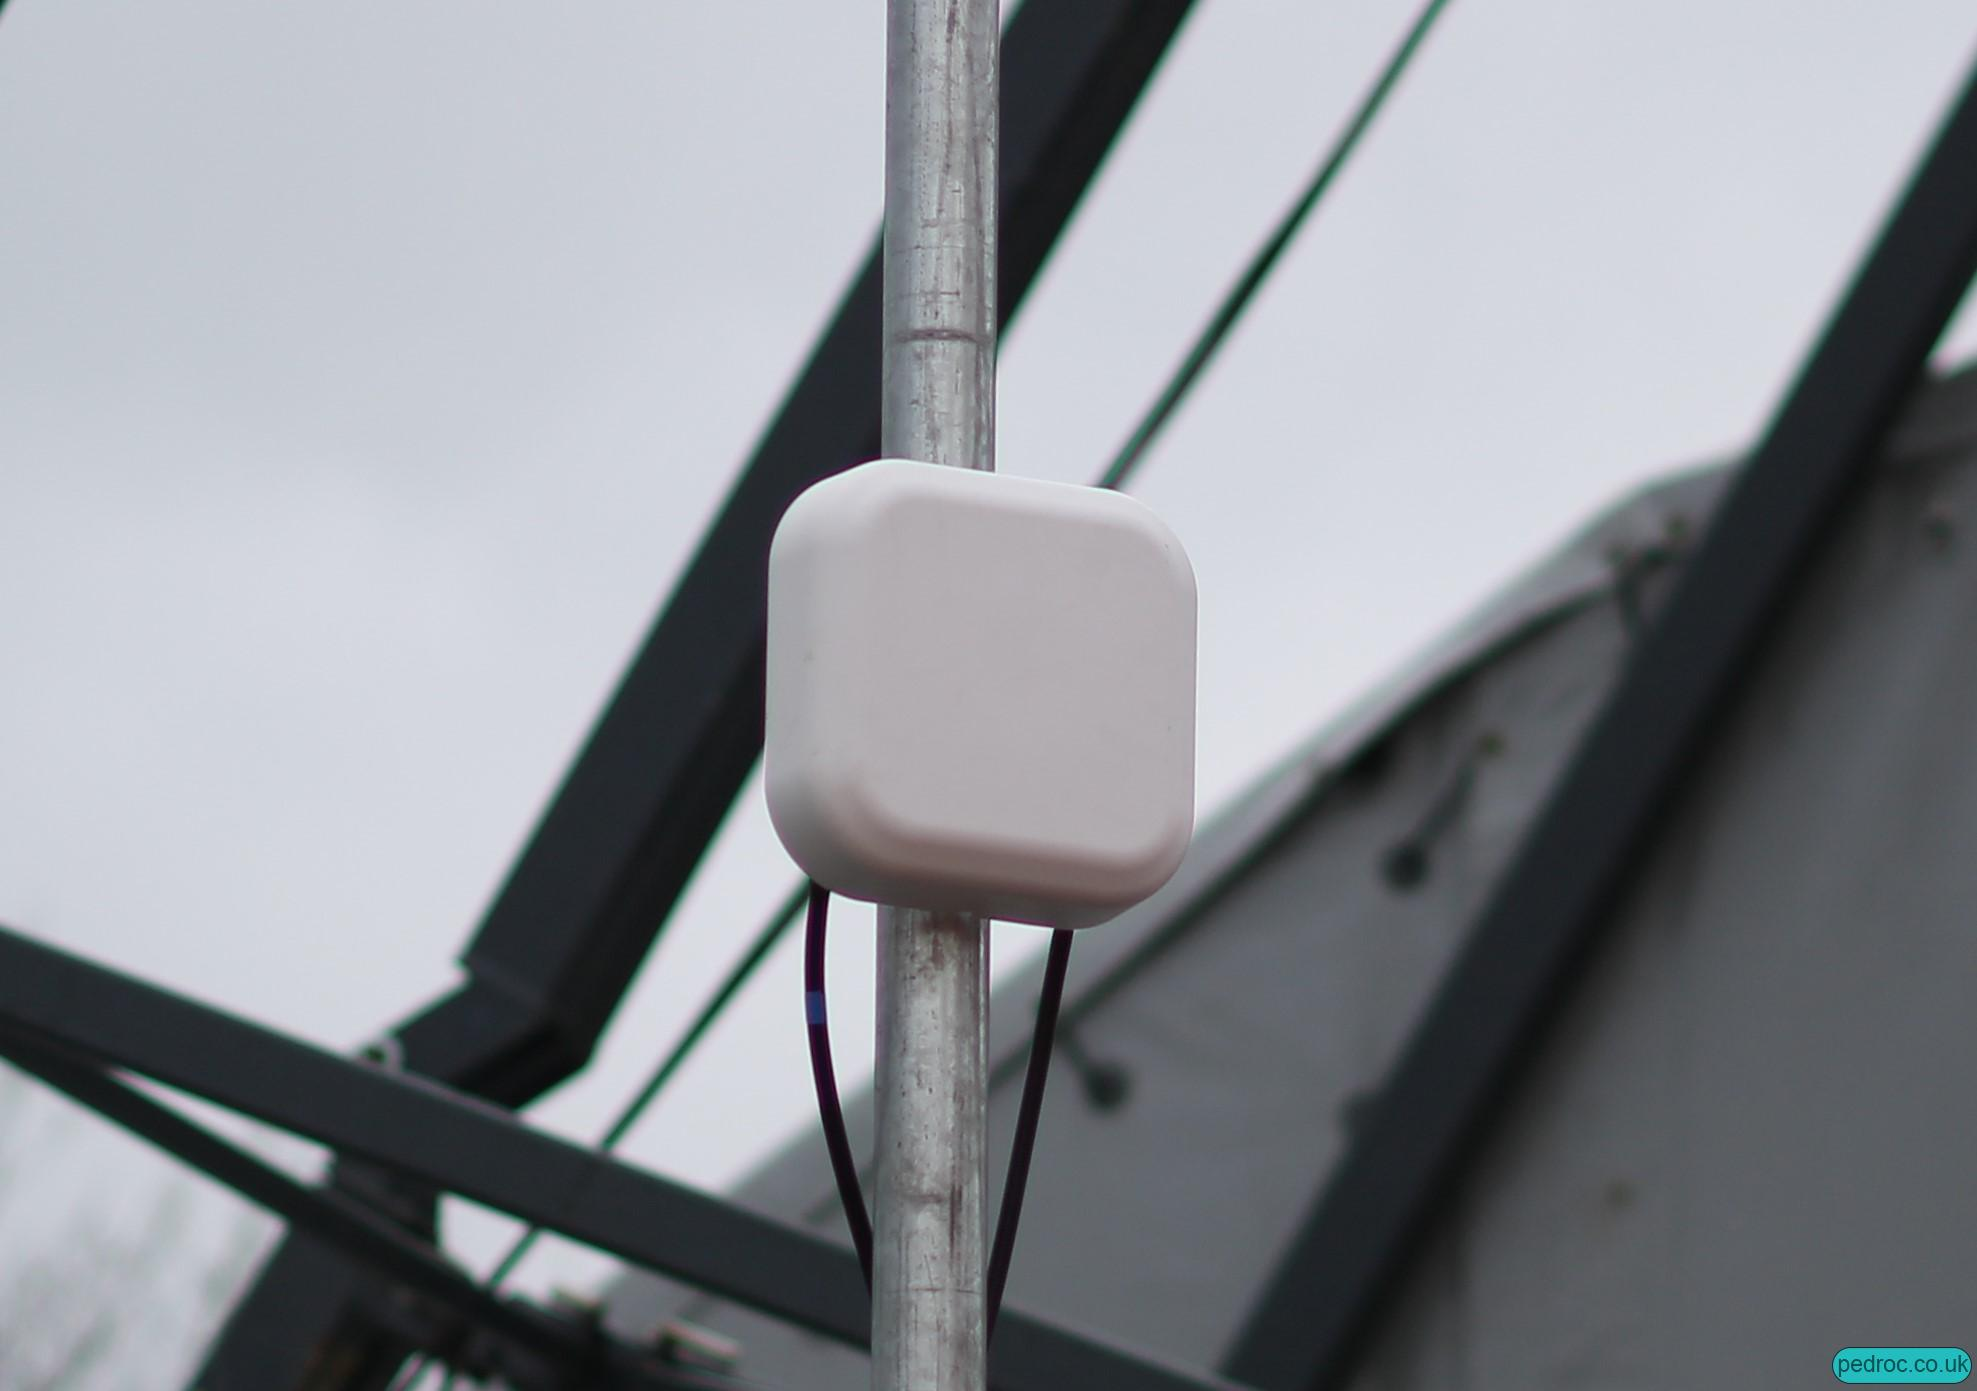 O2's micro/mini DAS style antennas at Winter Wonderland.